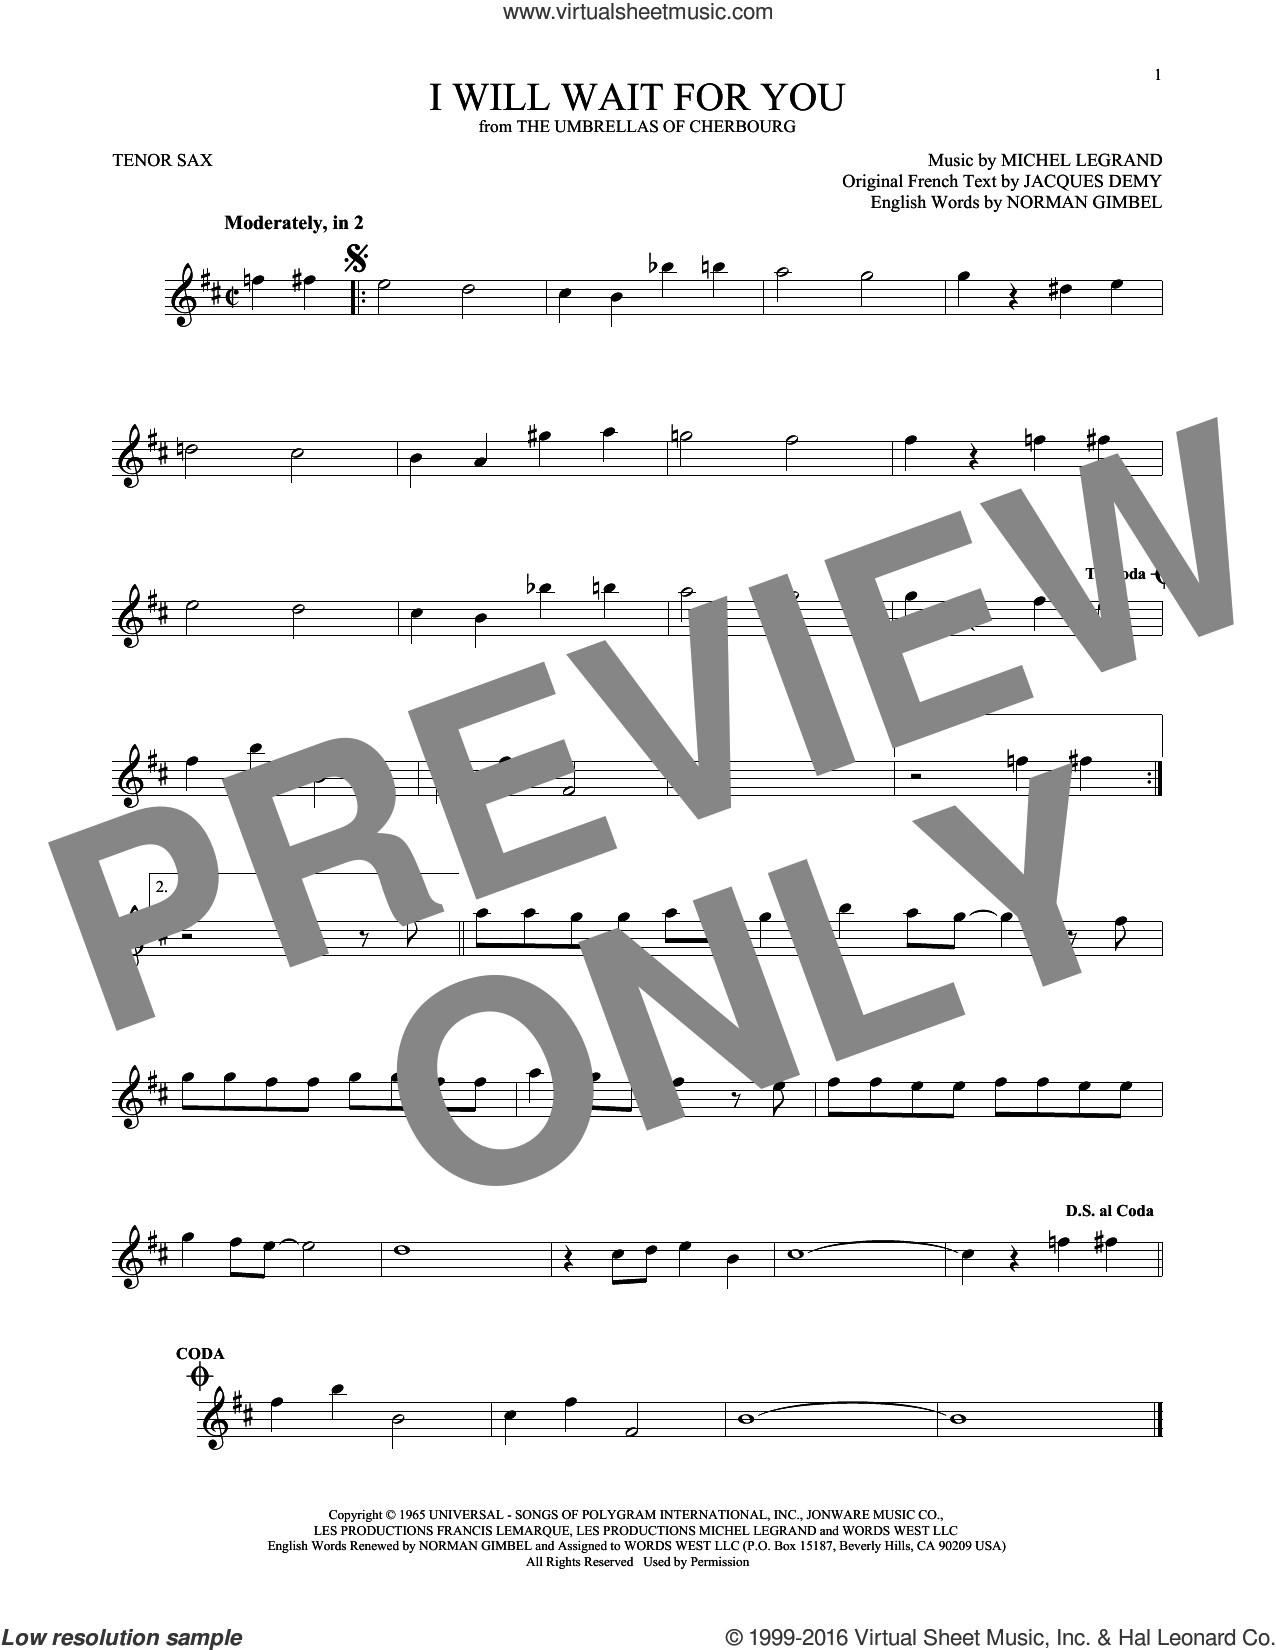 I Will Wait For You sheet music for tenor saxophone solo ( Sax) by Norman Gimbel, Jacques Demy and Michel Legrand. Score Image Preview.